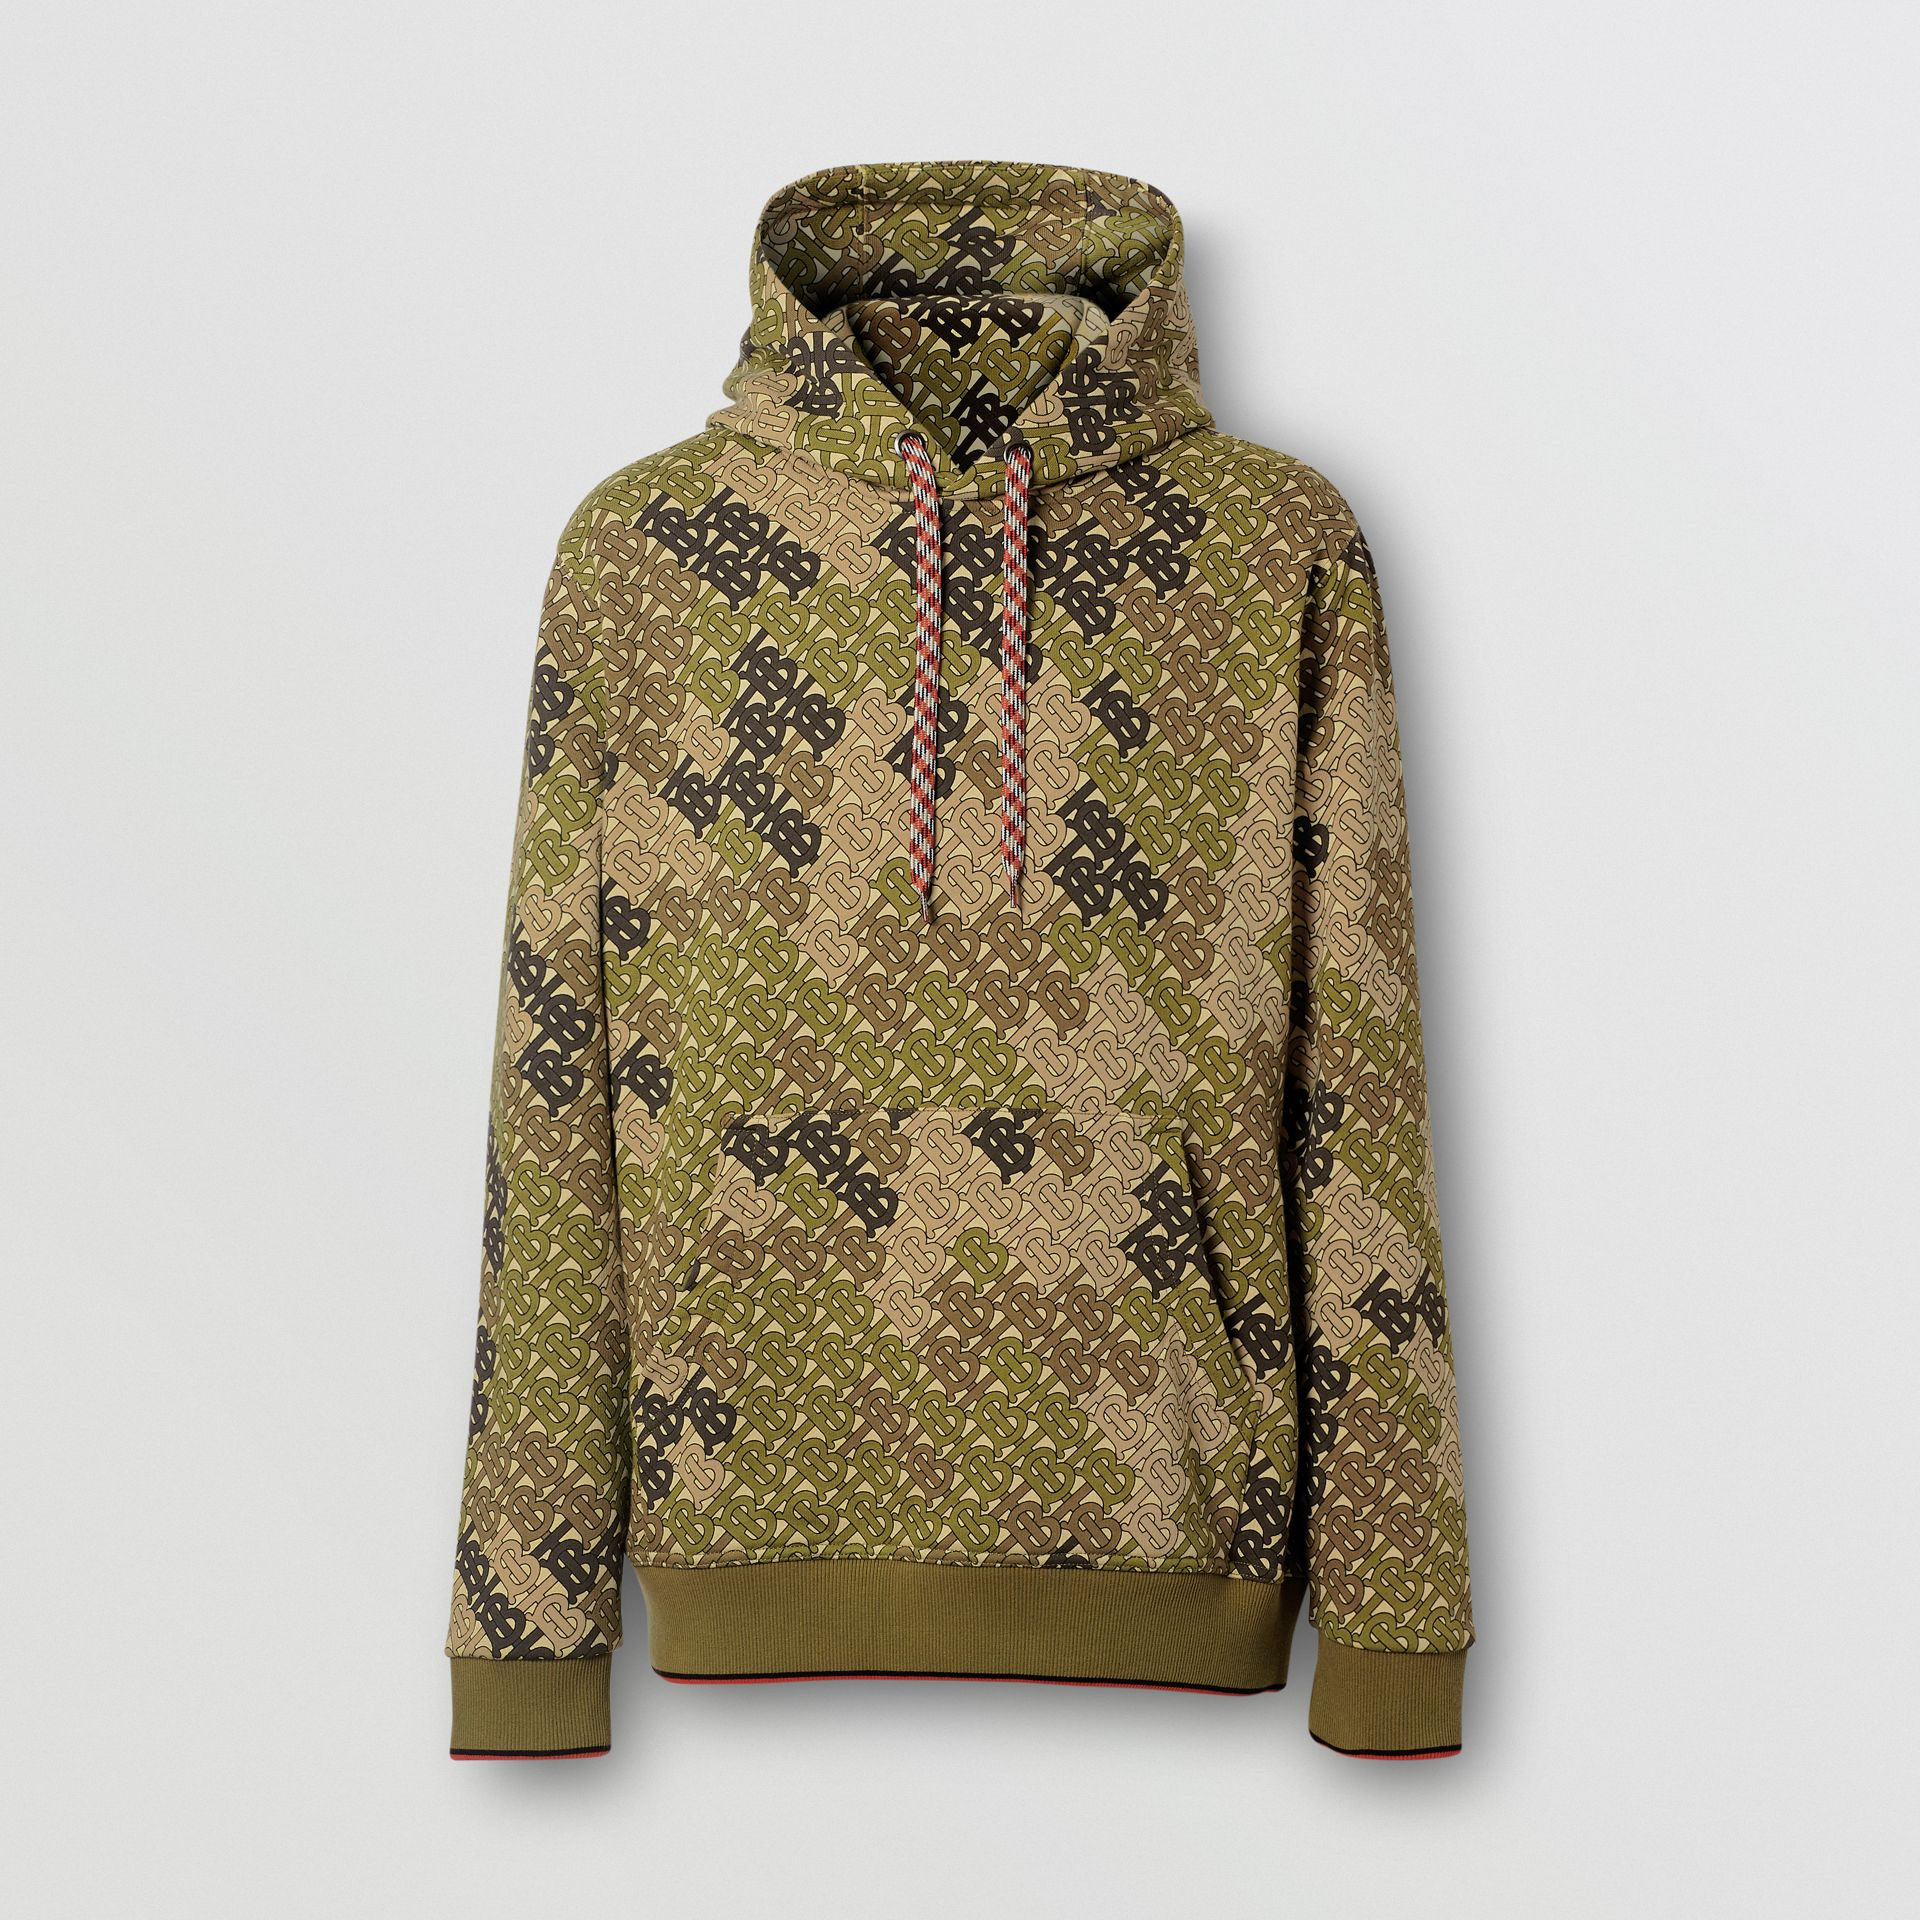 Monogram Print Cotton Hoodie in Khaki Green - Men | Burberry Hong Kong - gallery image 3